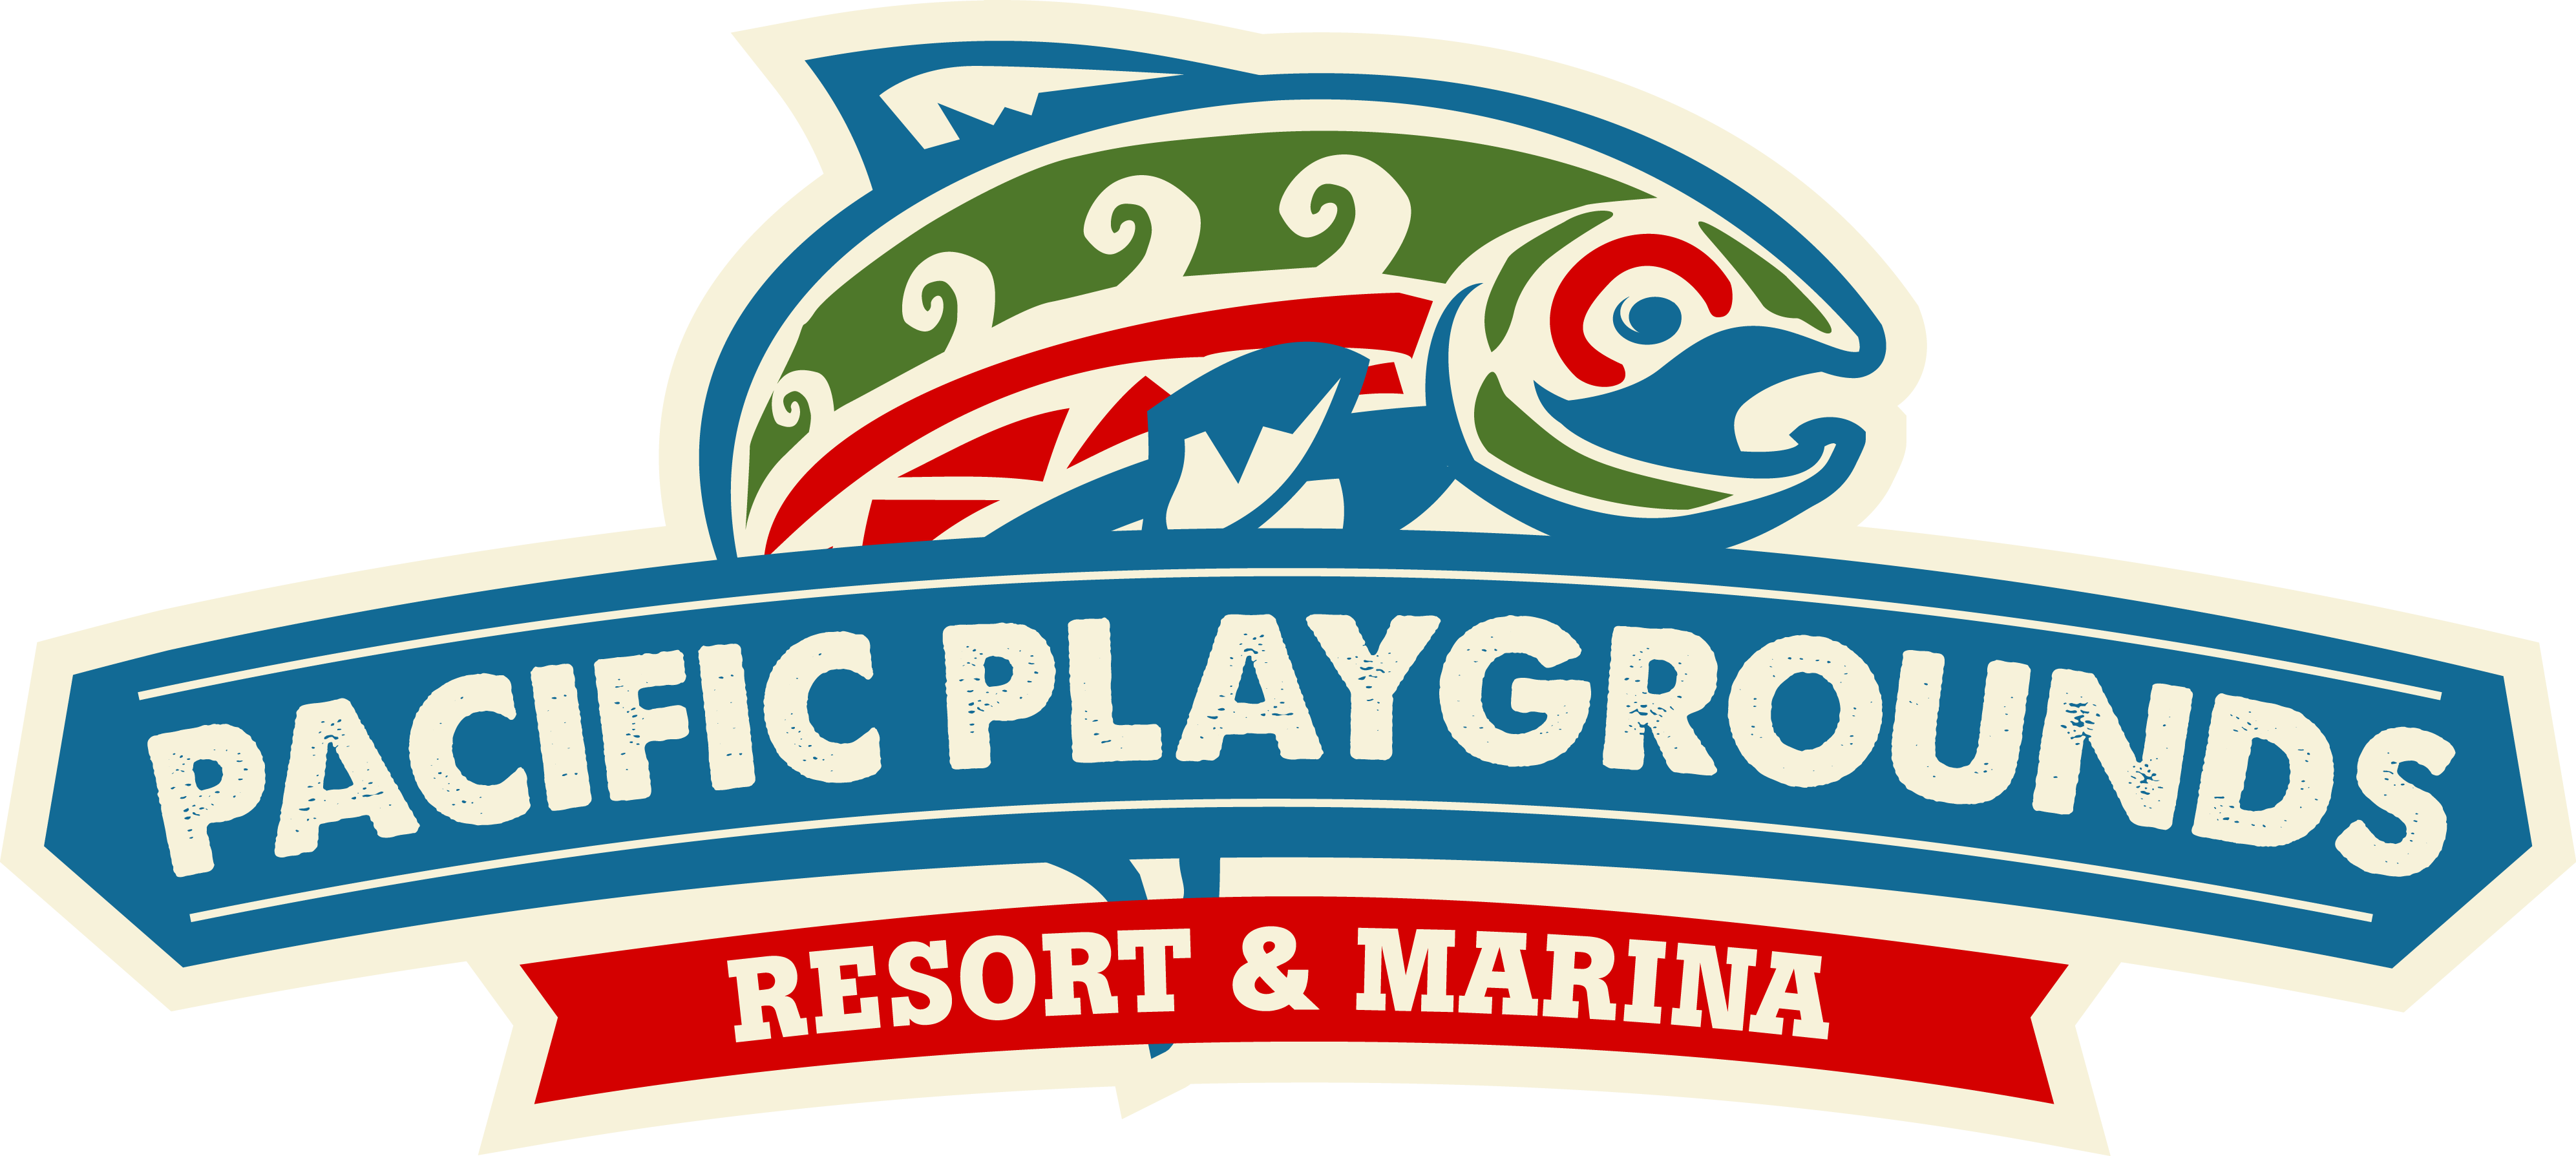 PACIFIC PLAYGROUNDS RESORT & MARINA